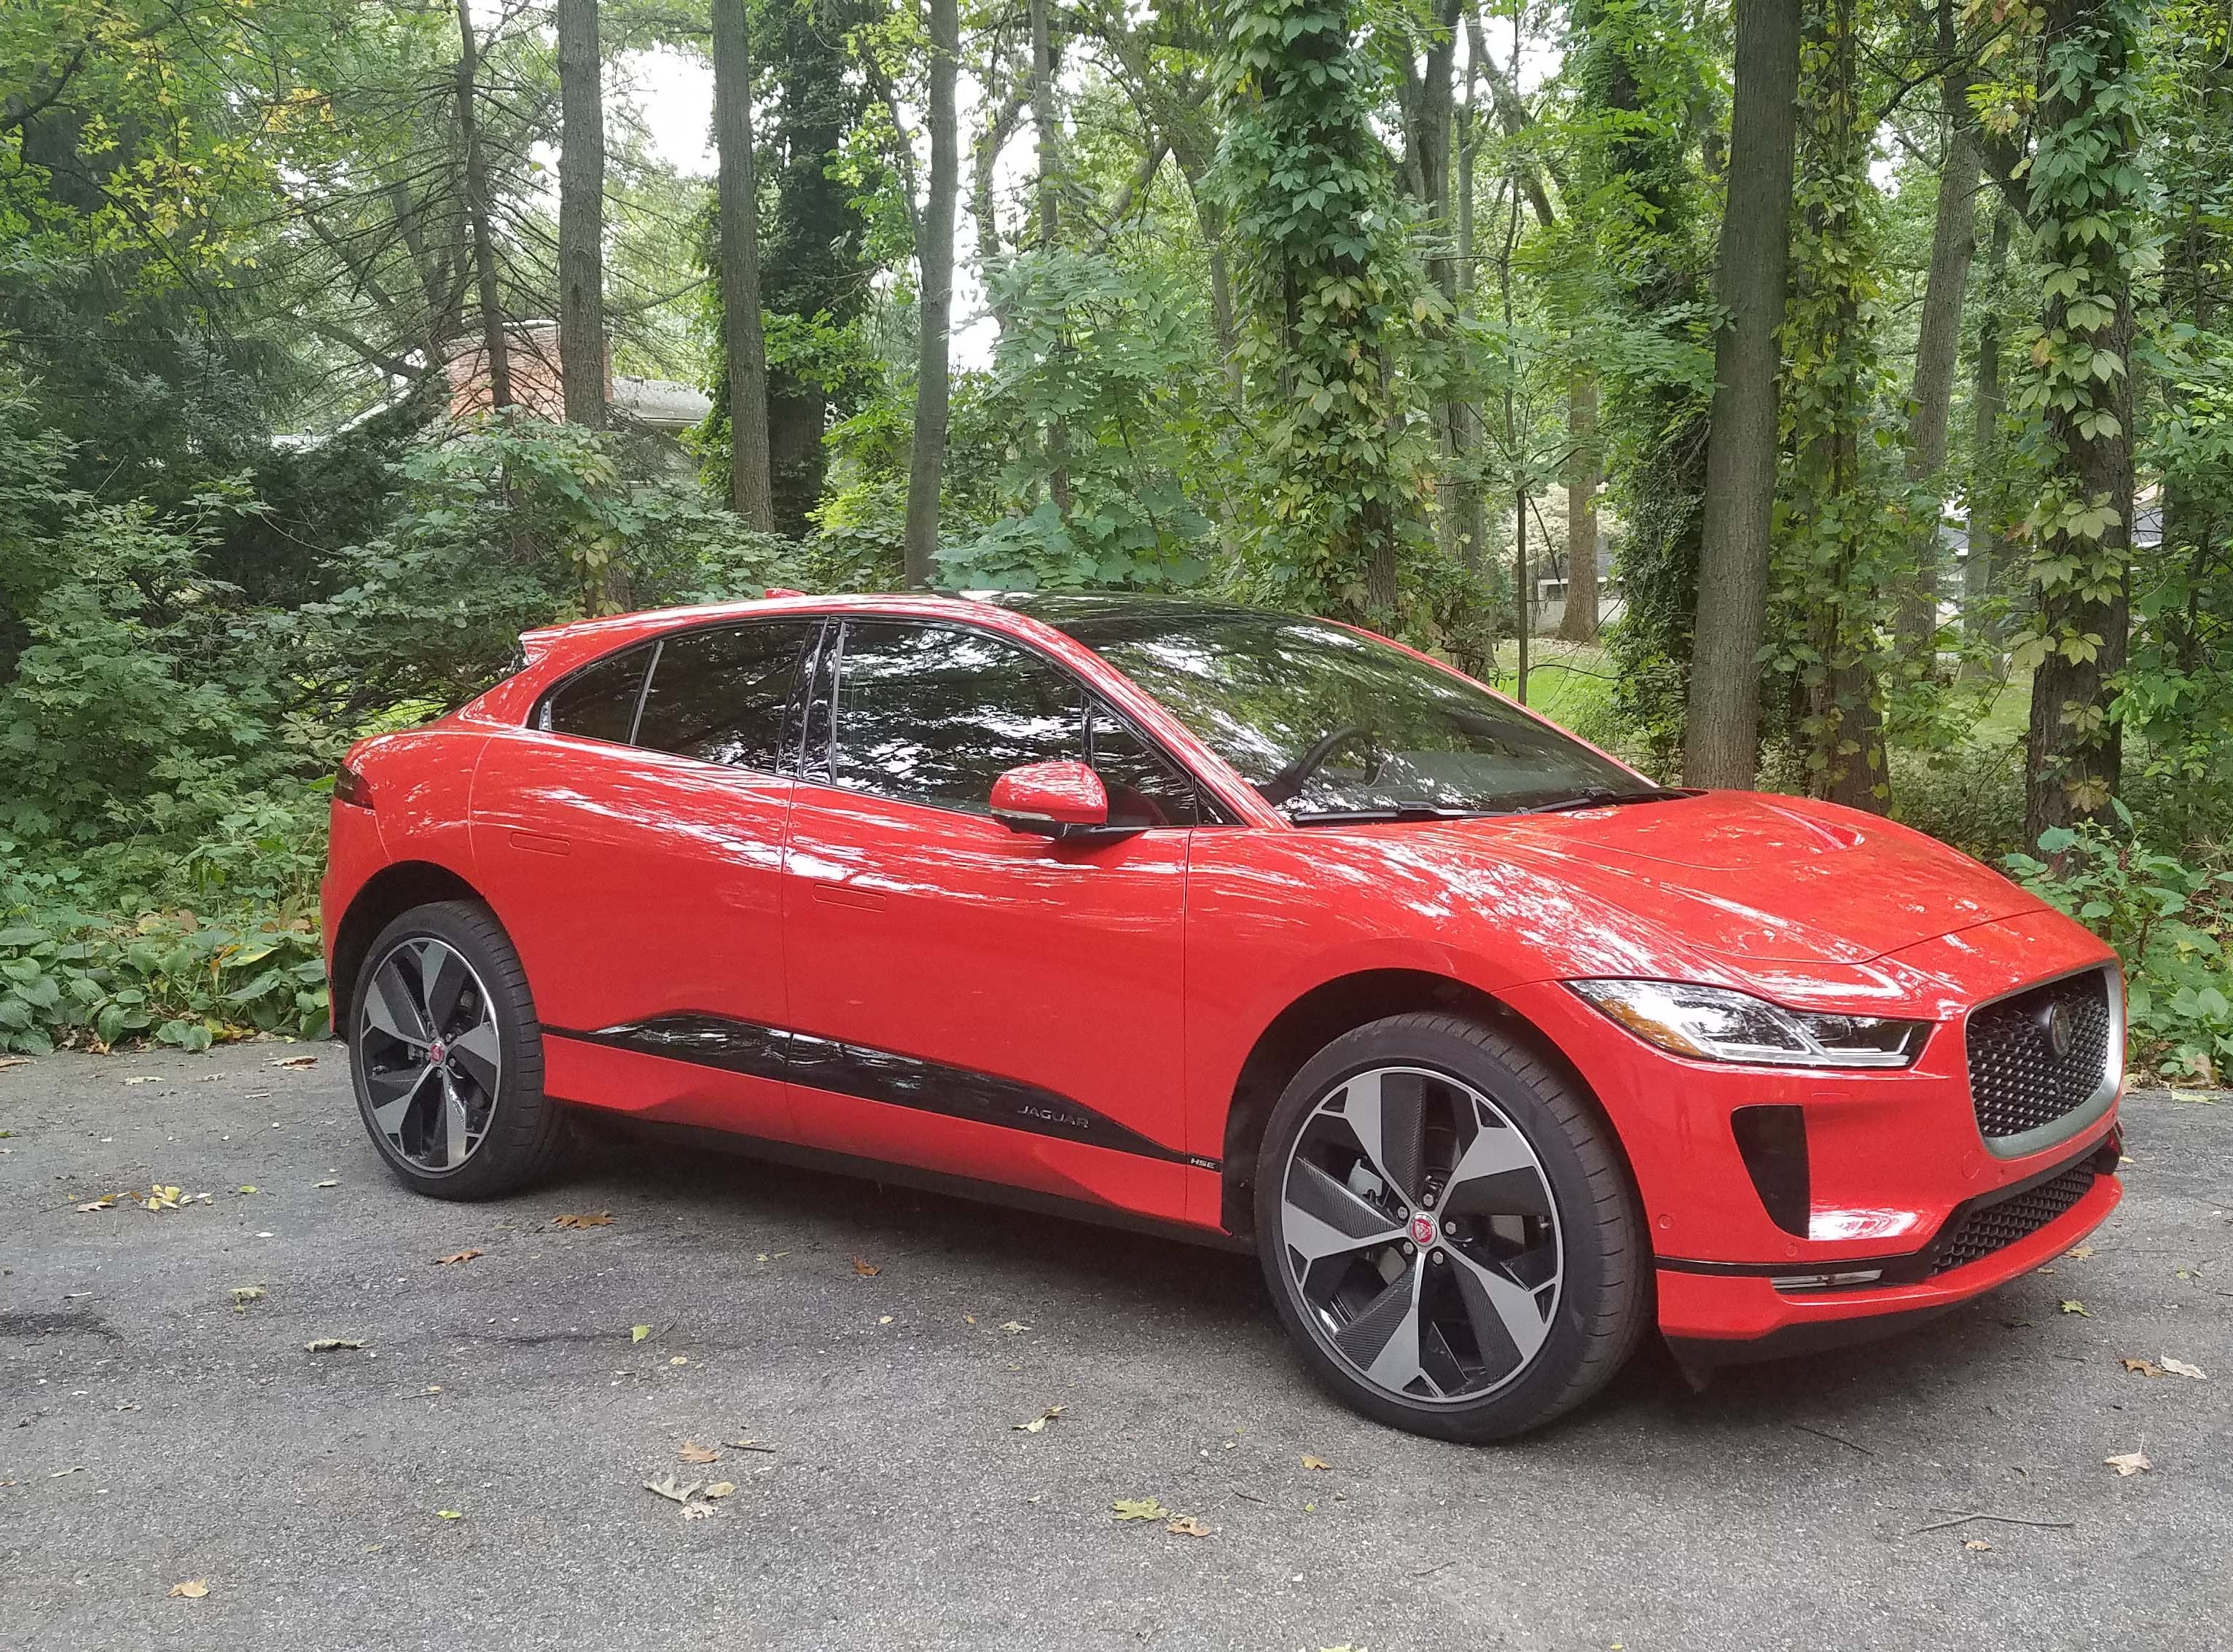 Utility of the Year nominee: The 2019 Jaguar I-Pace is the Brit brand's first all-electric vehicle. Aimed at the Tesla Model S/X, it costs about $86K.